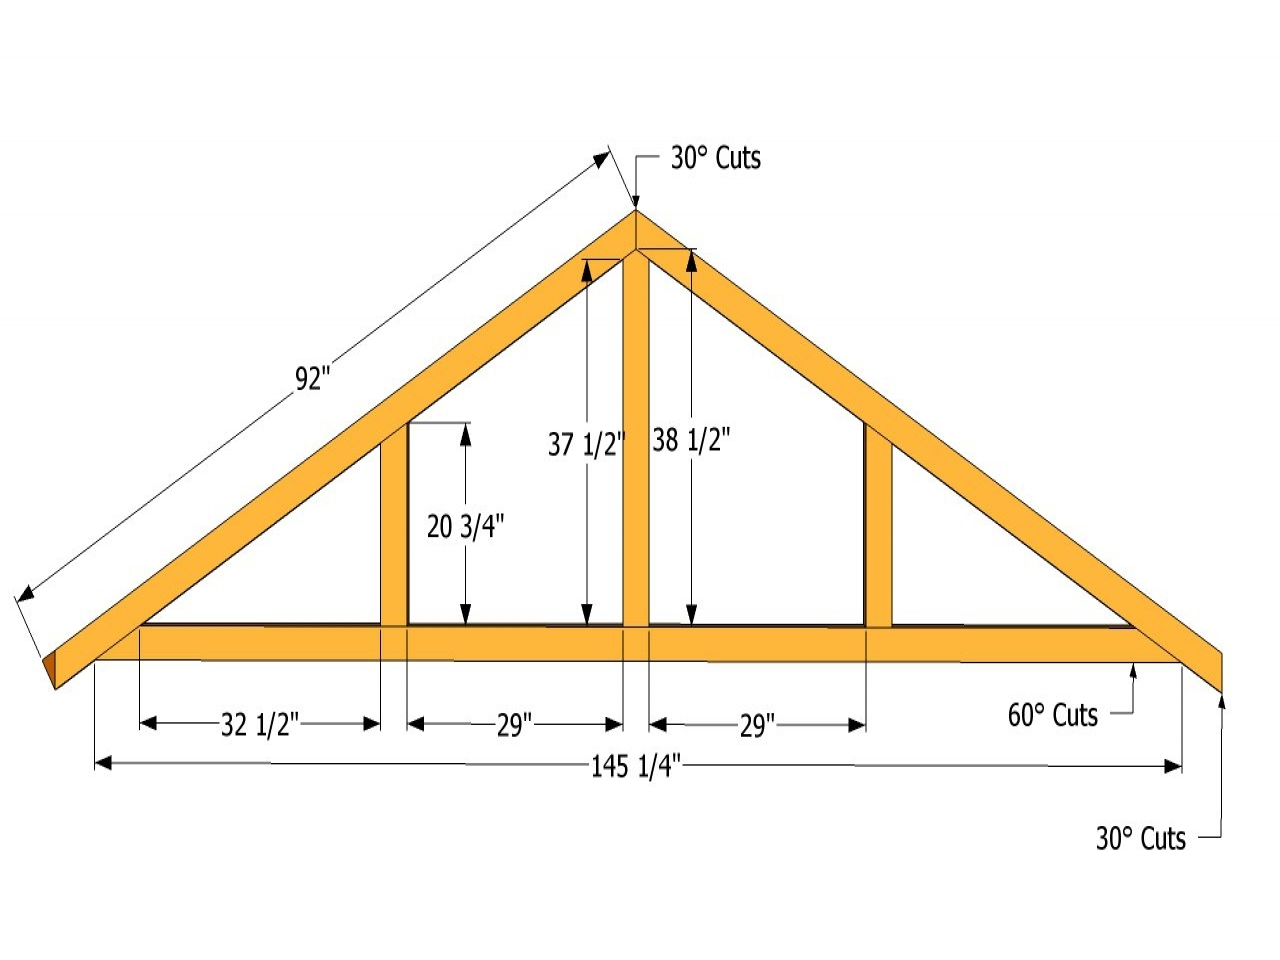 Shed roof design drawings shed roof truss design roof for Price of roof trusses